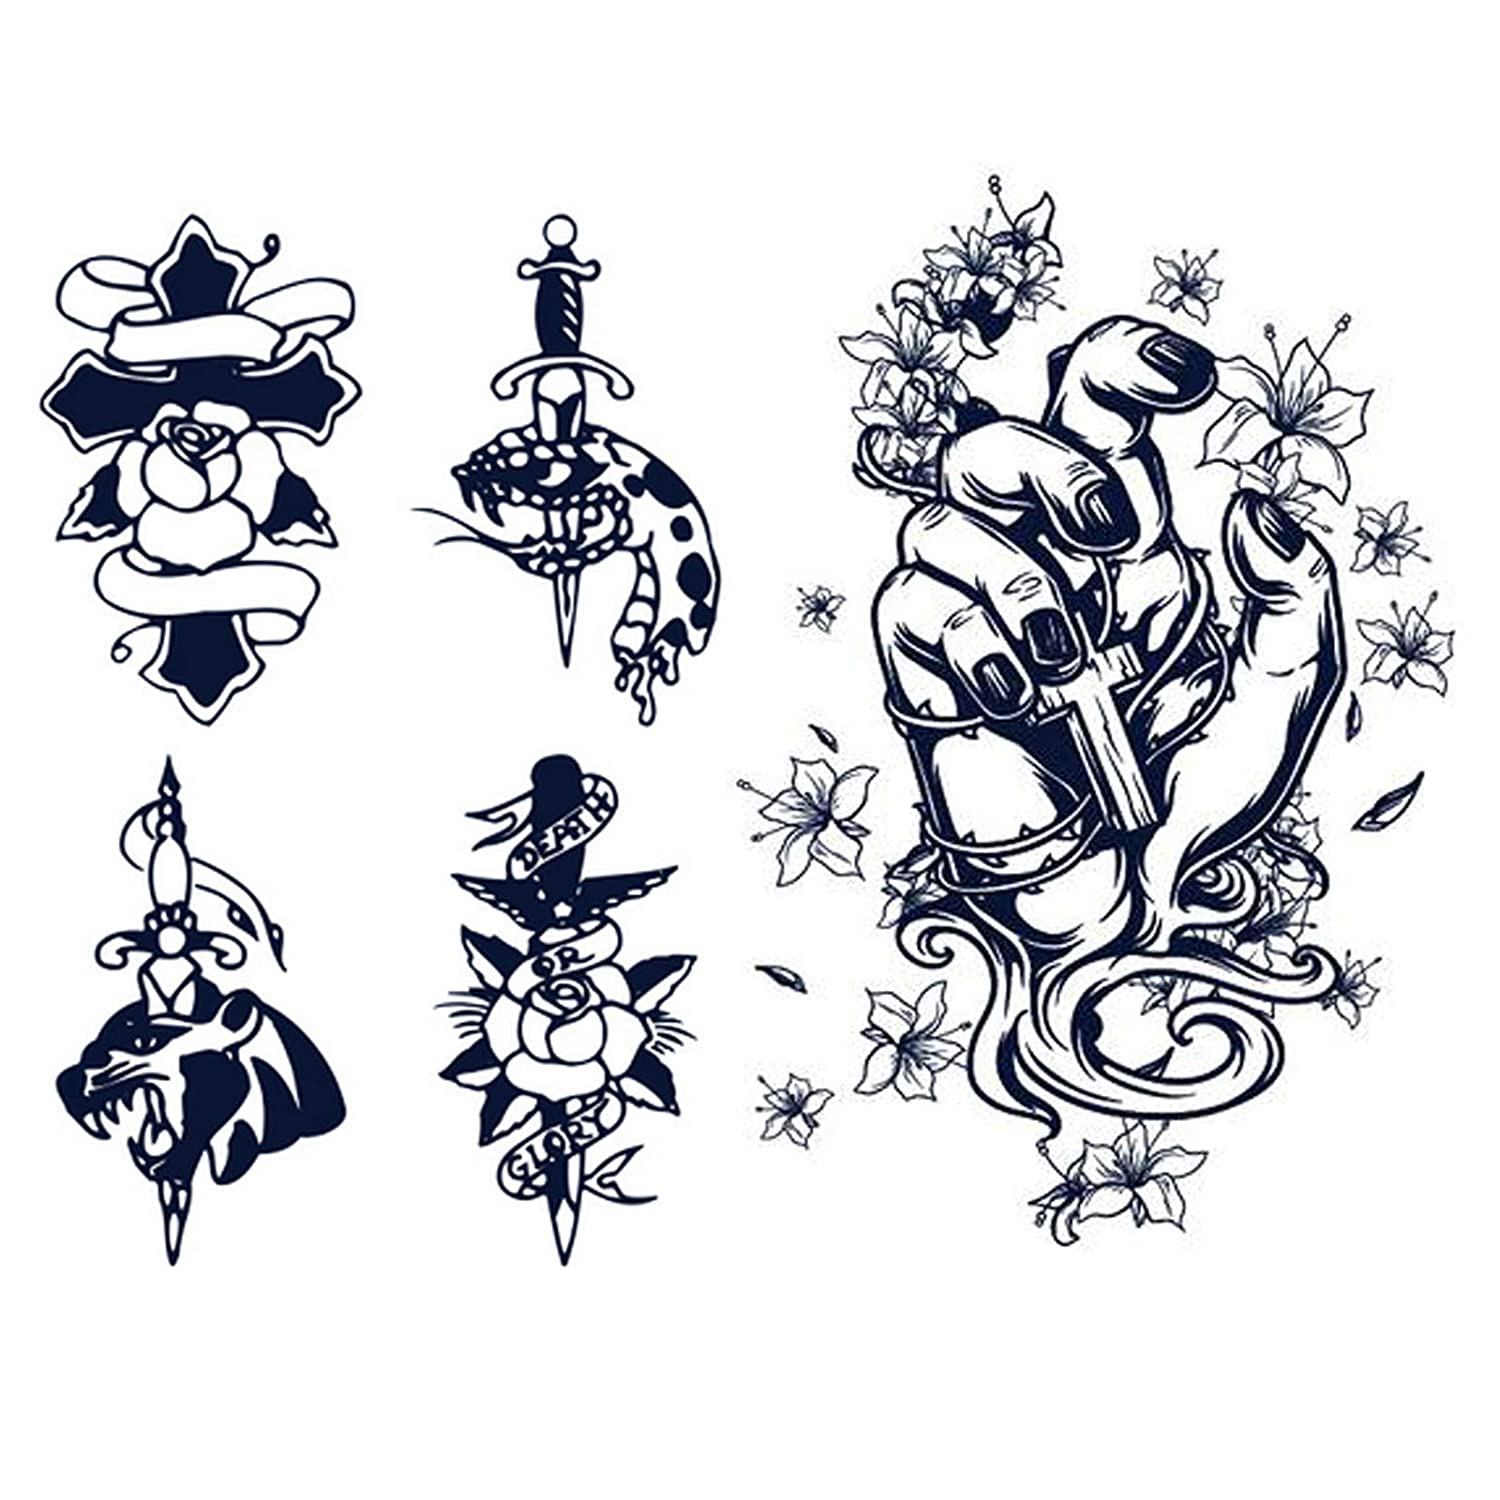 2 combination plant semi permanent tattoo stickers, cross, skull, small pattern, flower, dark temporary tattoo stickers, suitable for adults, girls and boys, lasting for 1-2 weeks, natural fading (A)